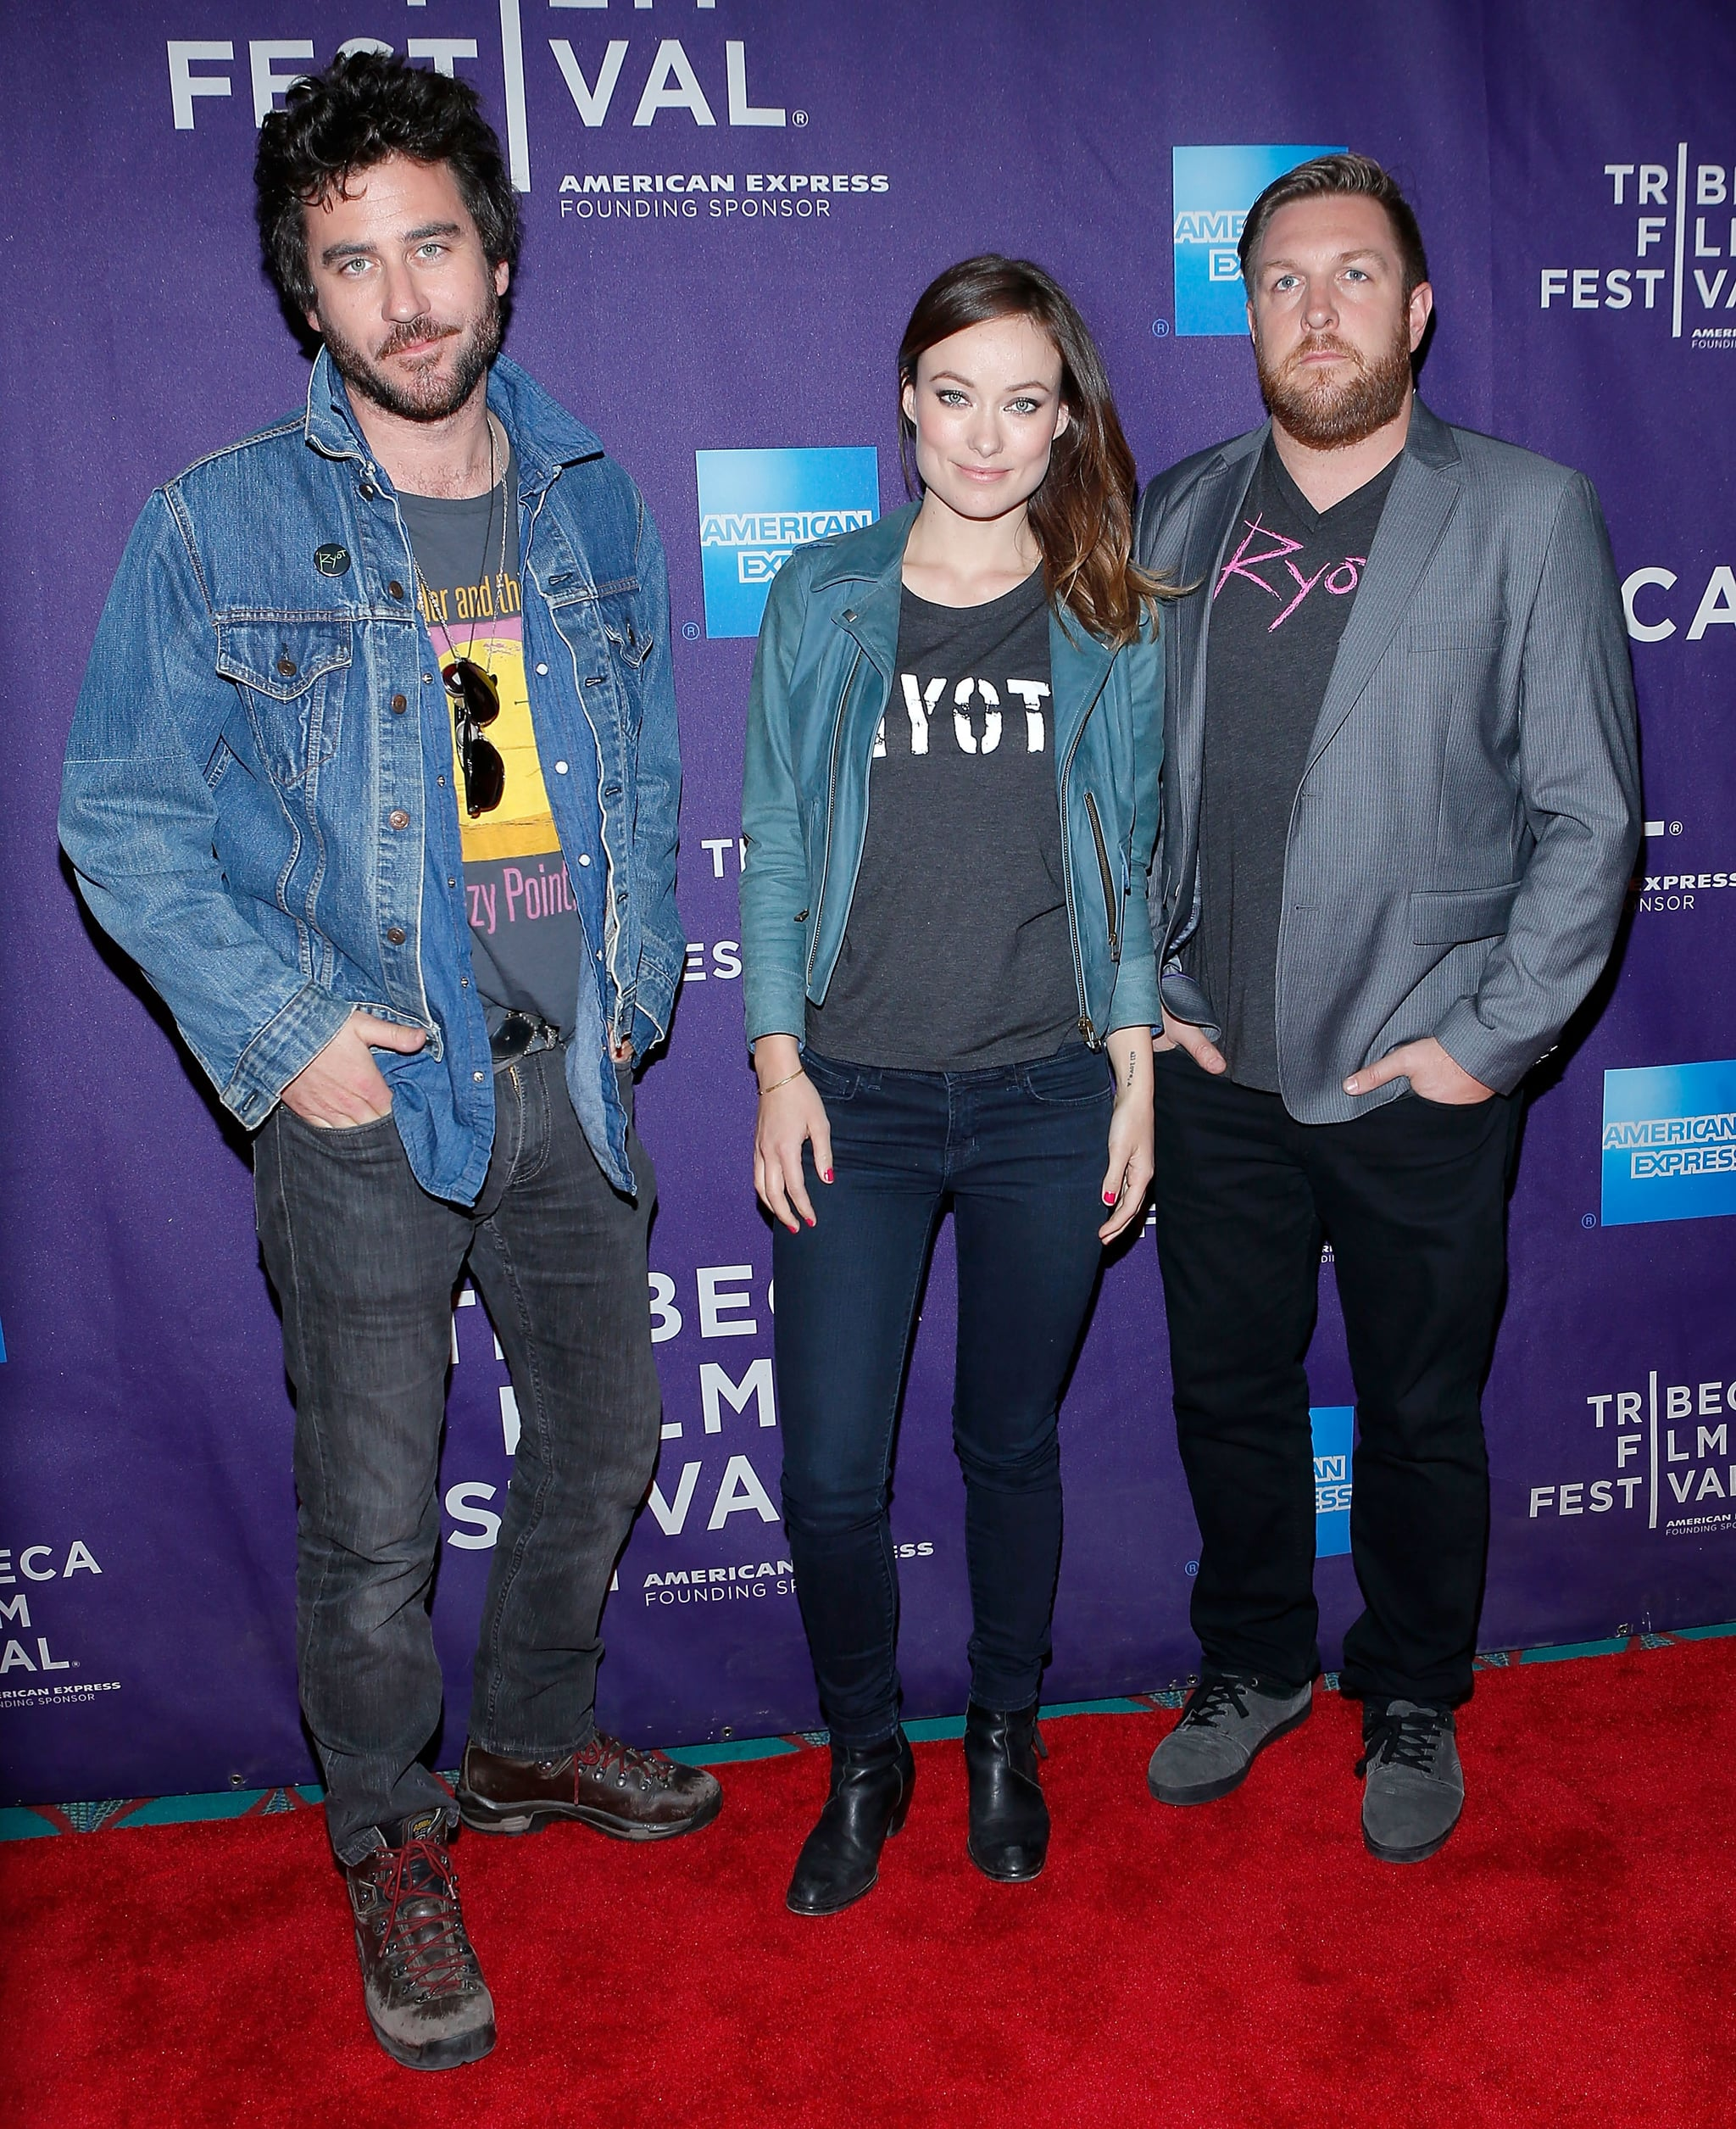 Olivia Wilde posed with Bryn Mooser and David Darg on the red carpet for a screening of The Rider and the Storm during the Tribeca Film Festival's shorts programs.